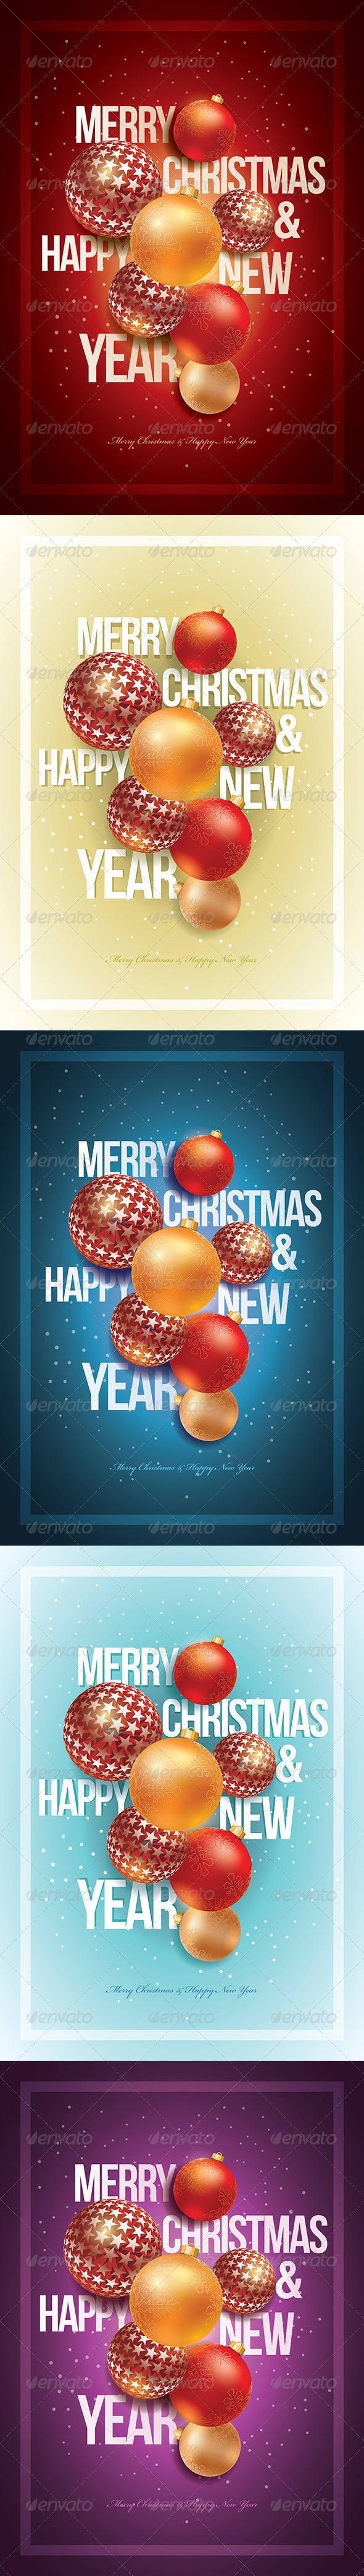 GraphicRiver Merry Christmas & Happy New Year 3514021